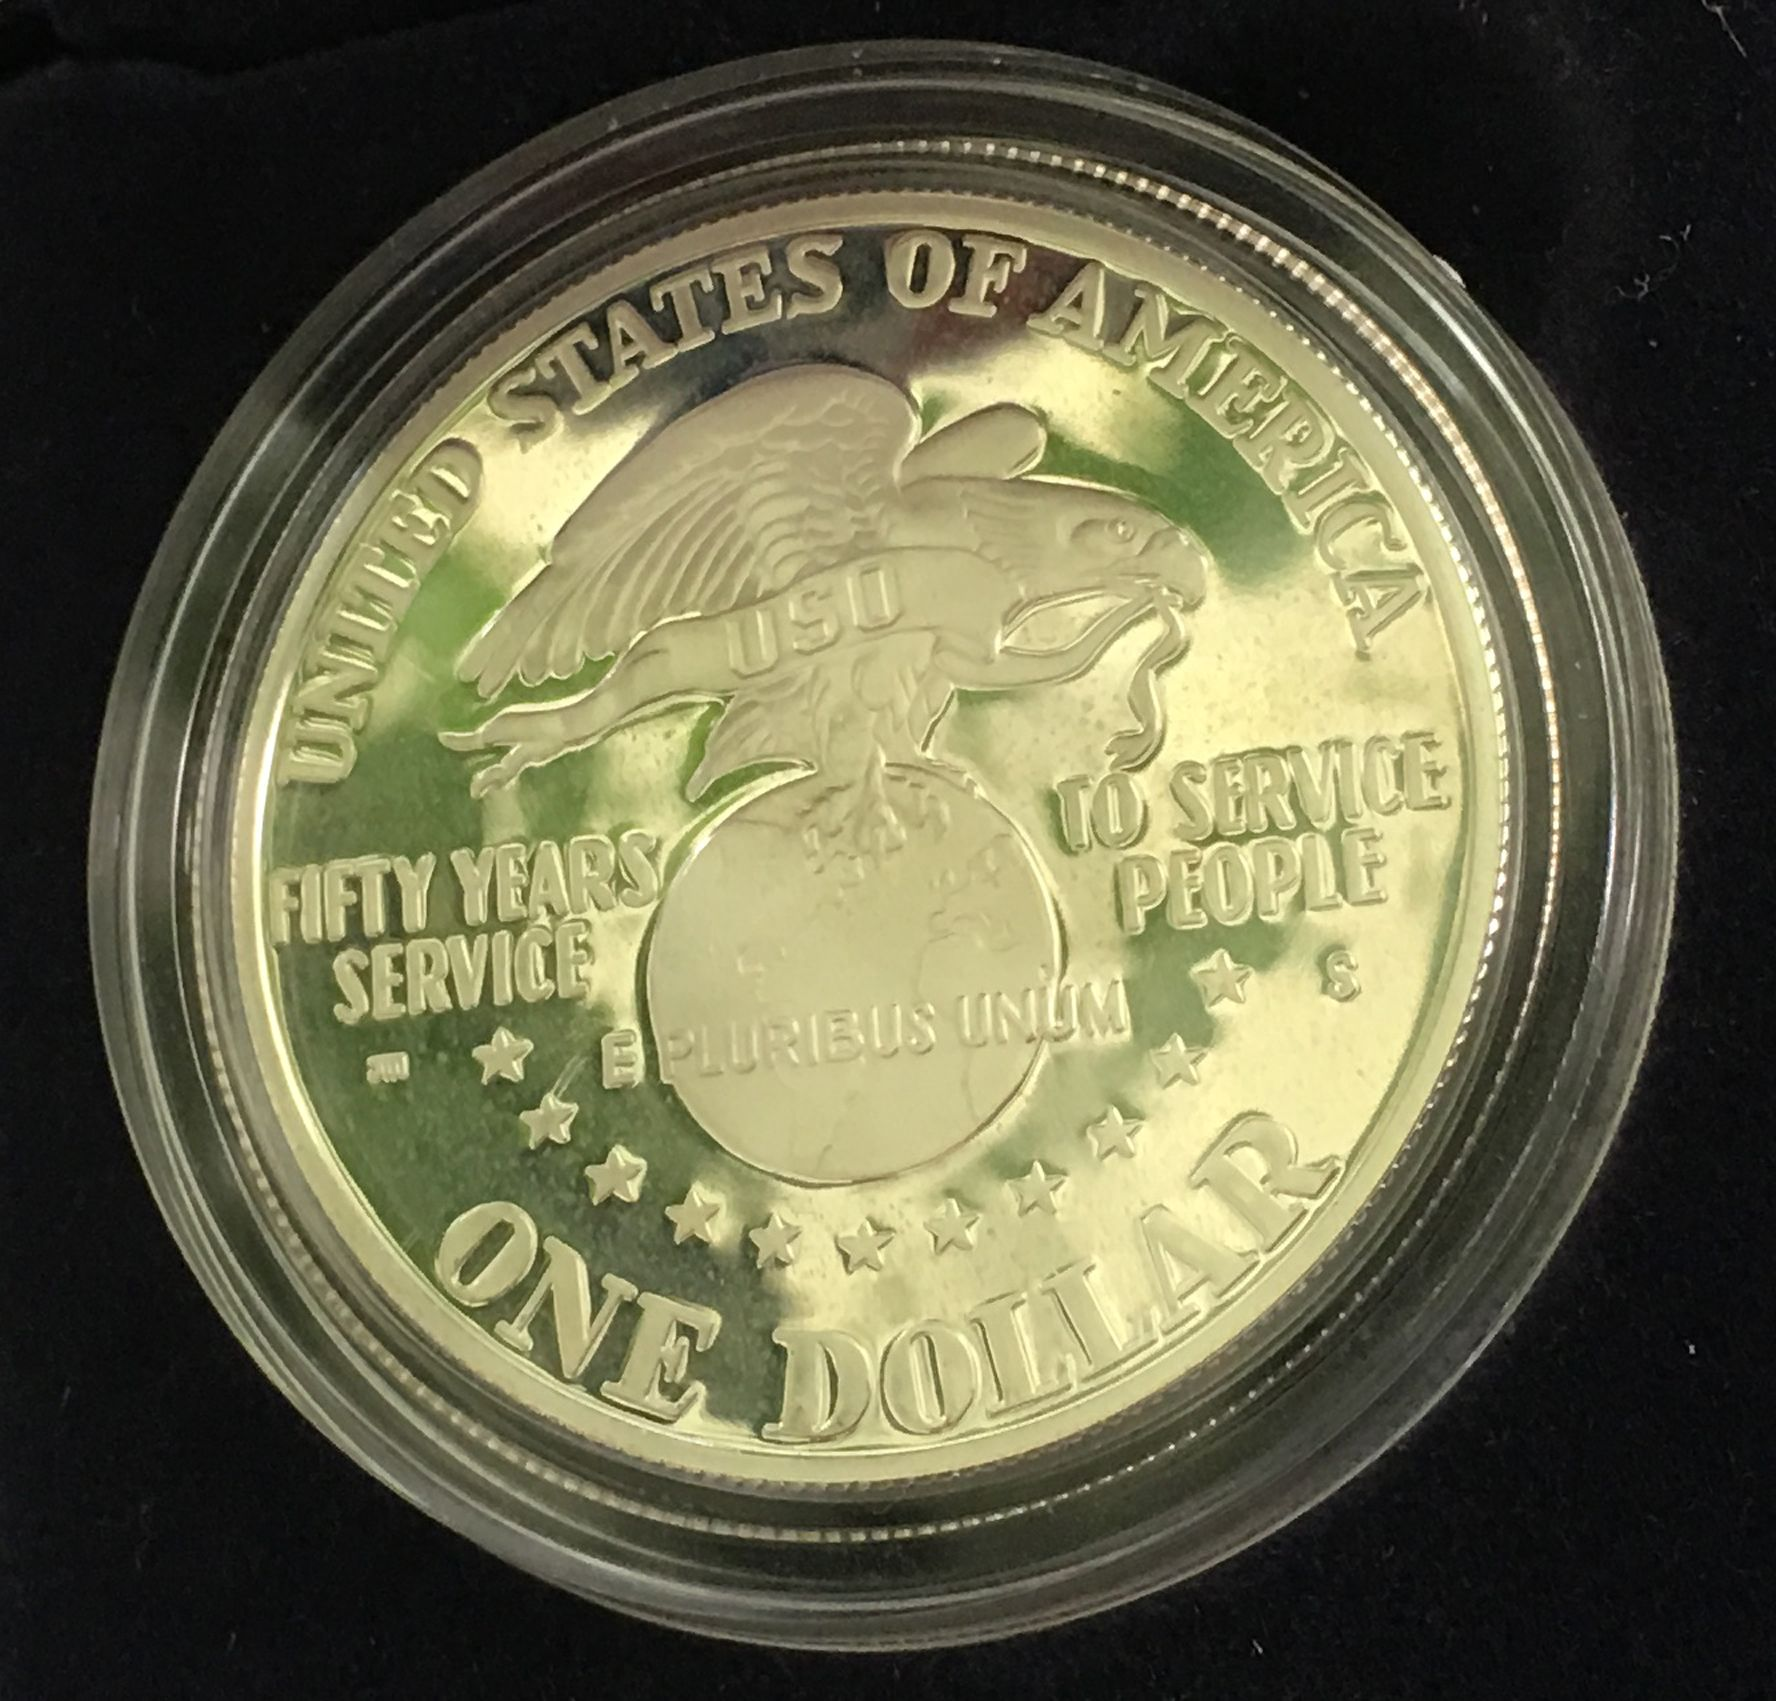 1991 S United Service Organizations Silver Dollar Proof